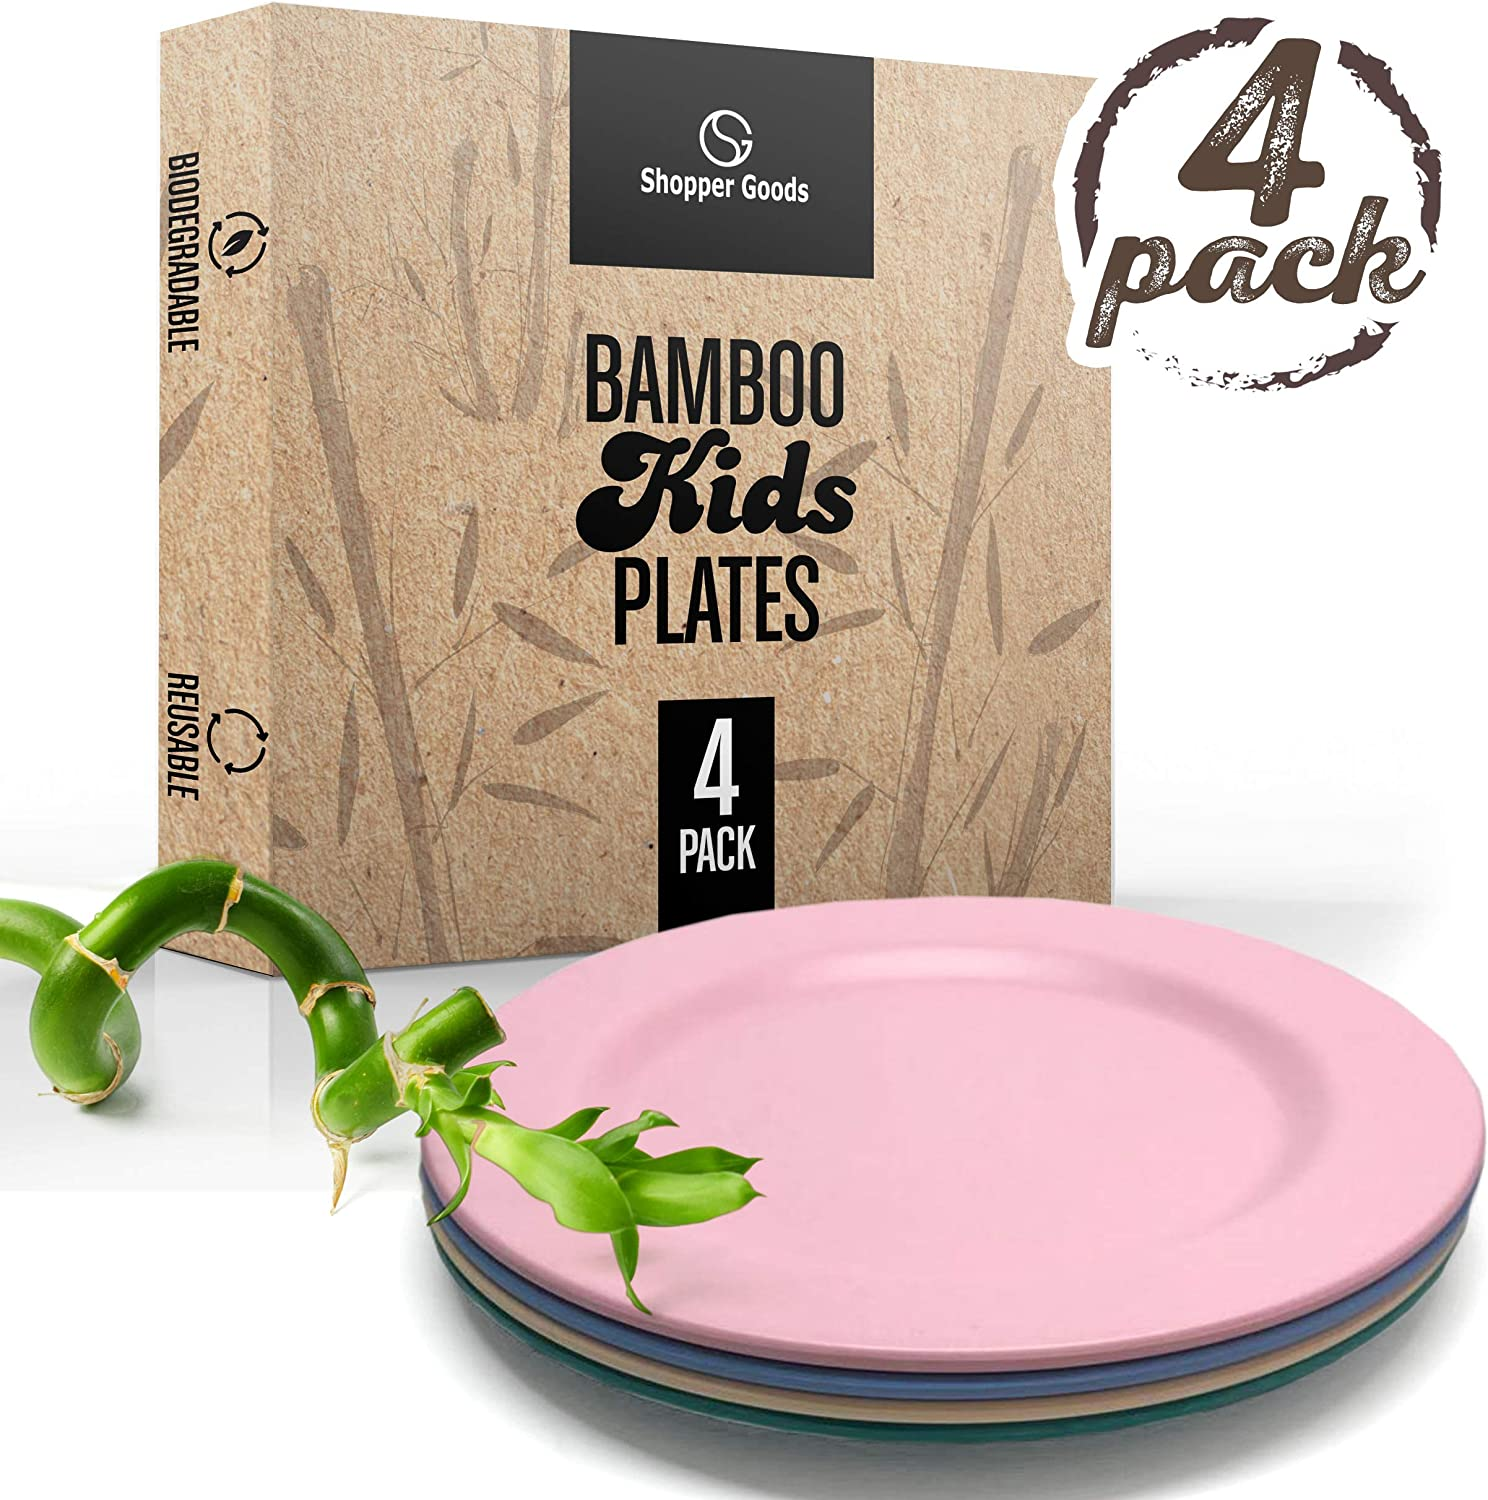 Shopper Goods Bamboo Plates 4 Pack, Bamboo Dinnerware, Eco-Friendly Dinnerware Set, BPA Free (Multiple Colors), Bamboo Fiber Plates for Healthy Dining